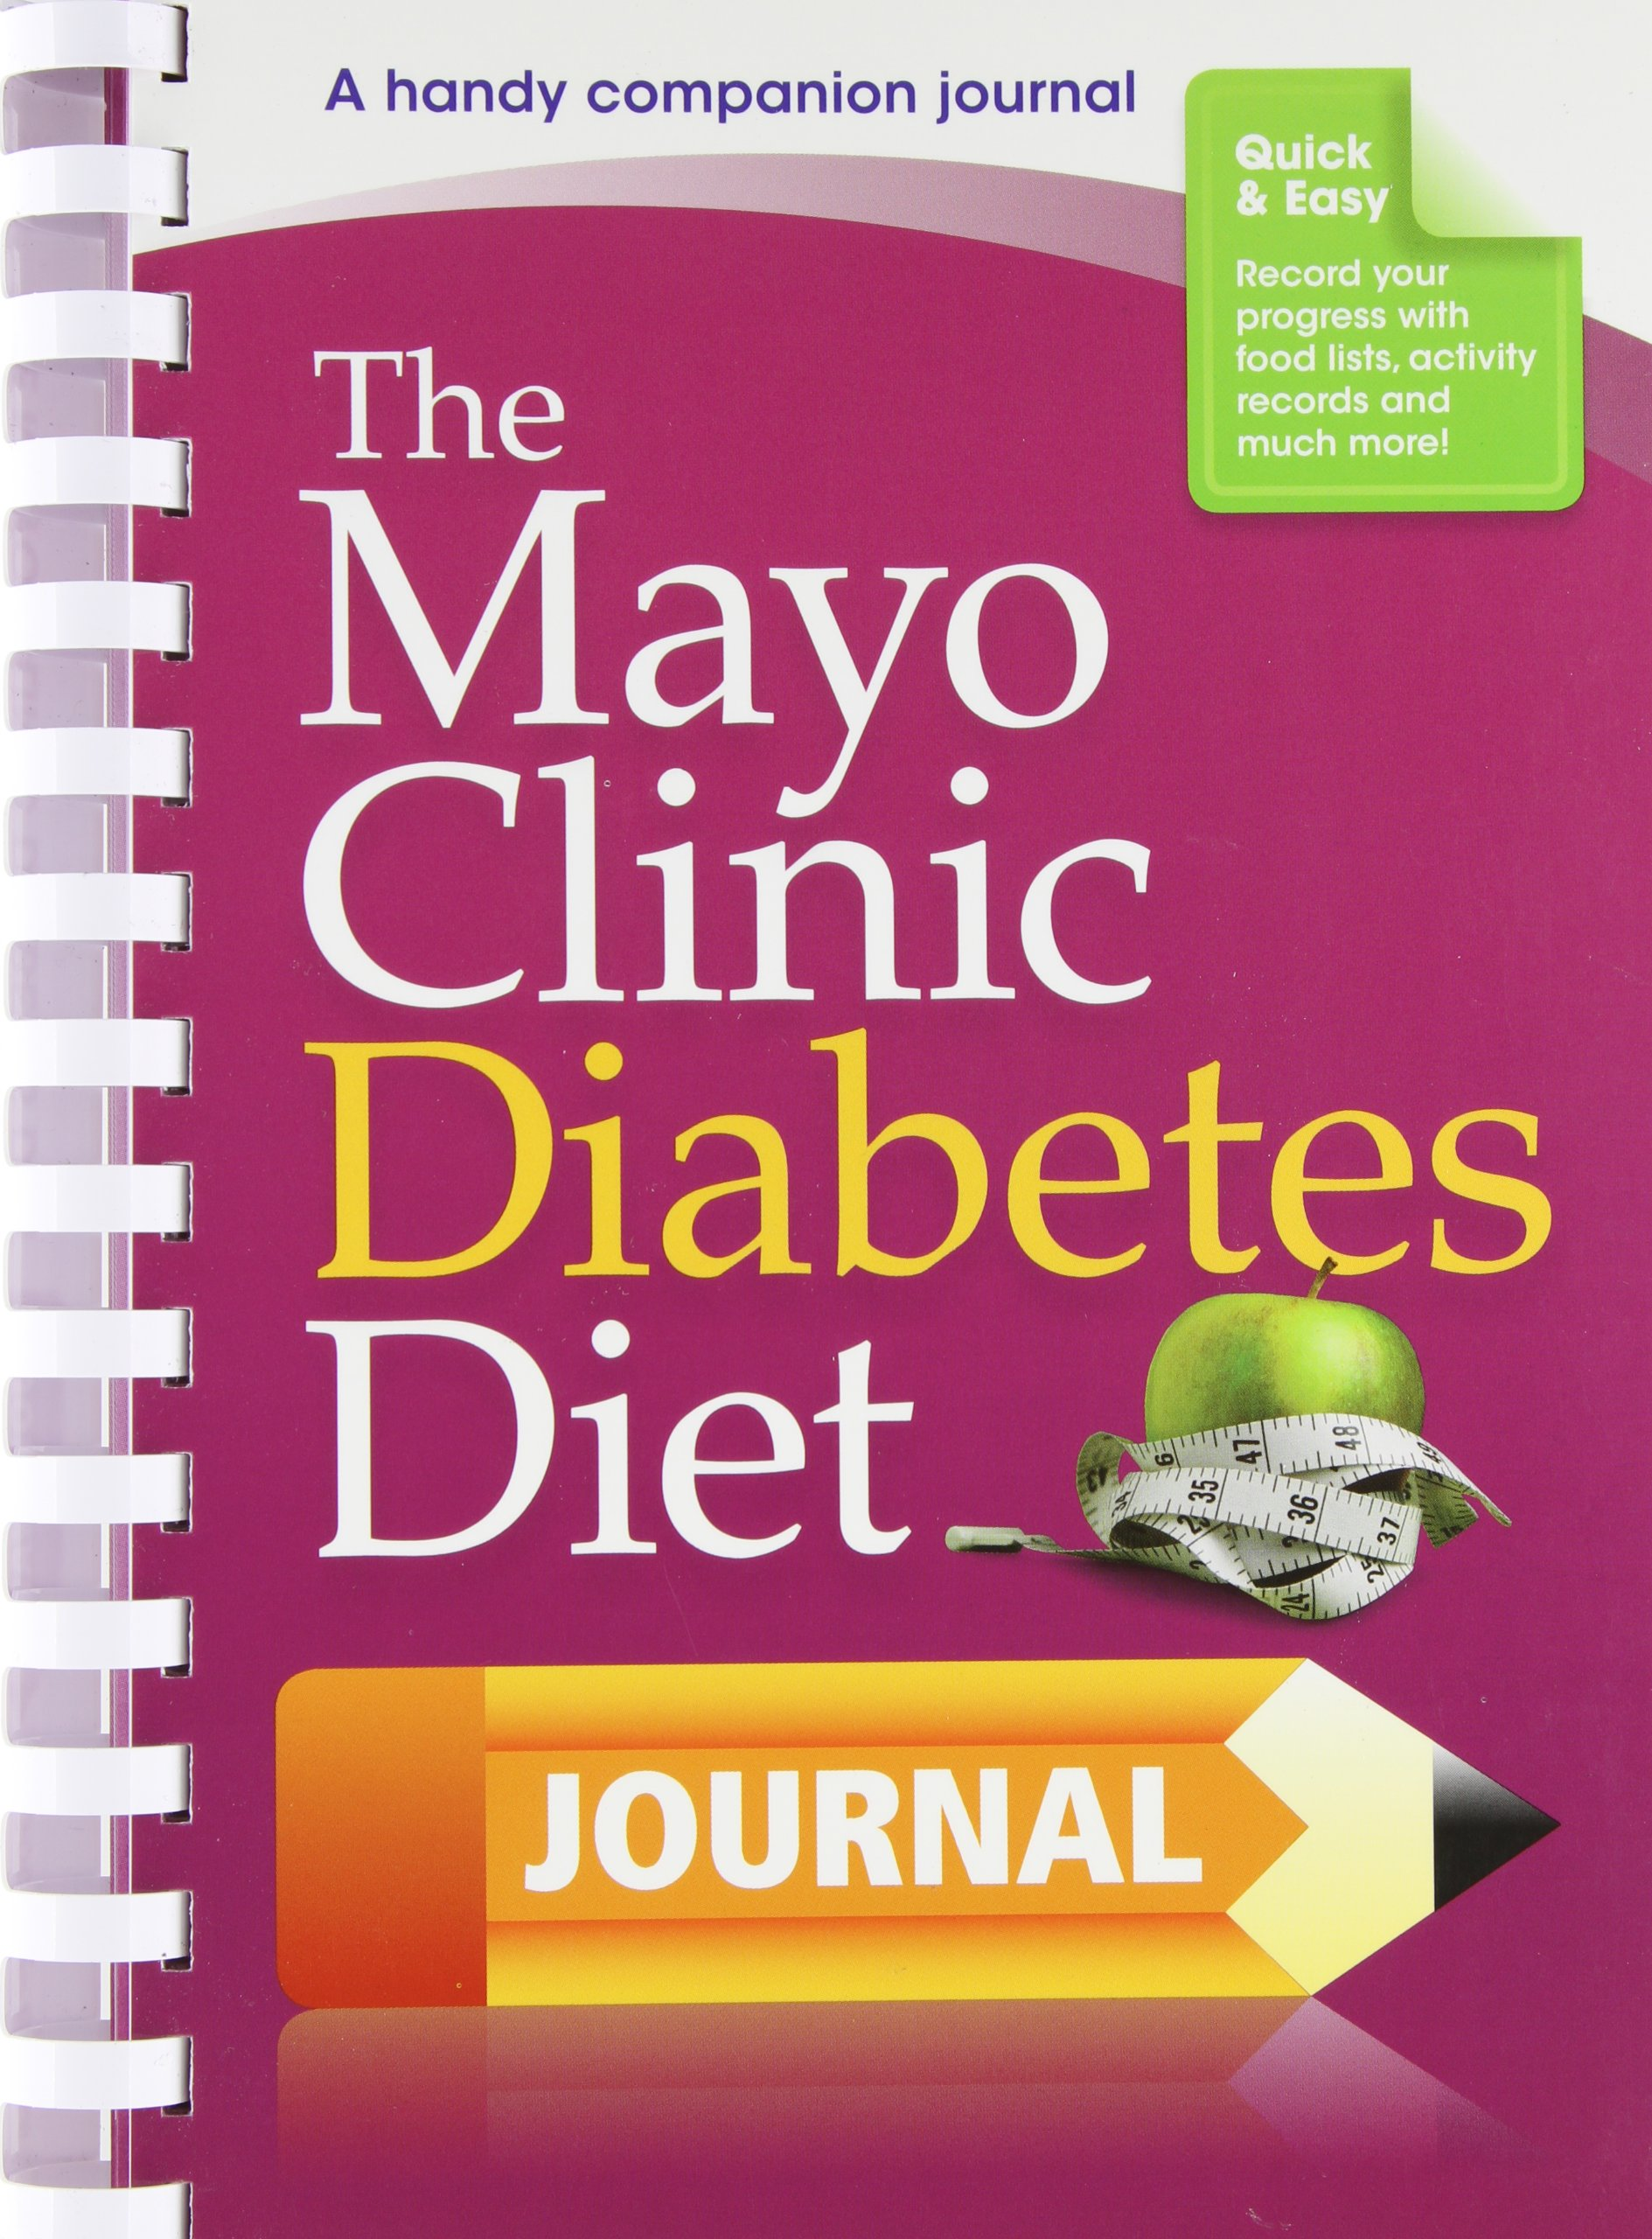 The Mayo Clinic Diabetes Diet Journal: A handy companion journal ebook